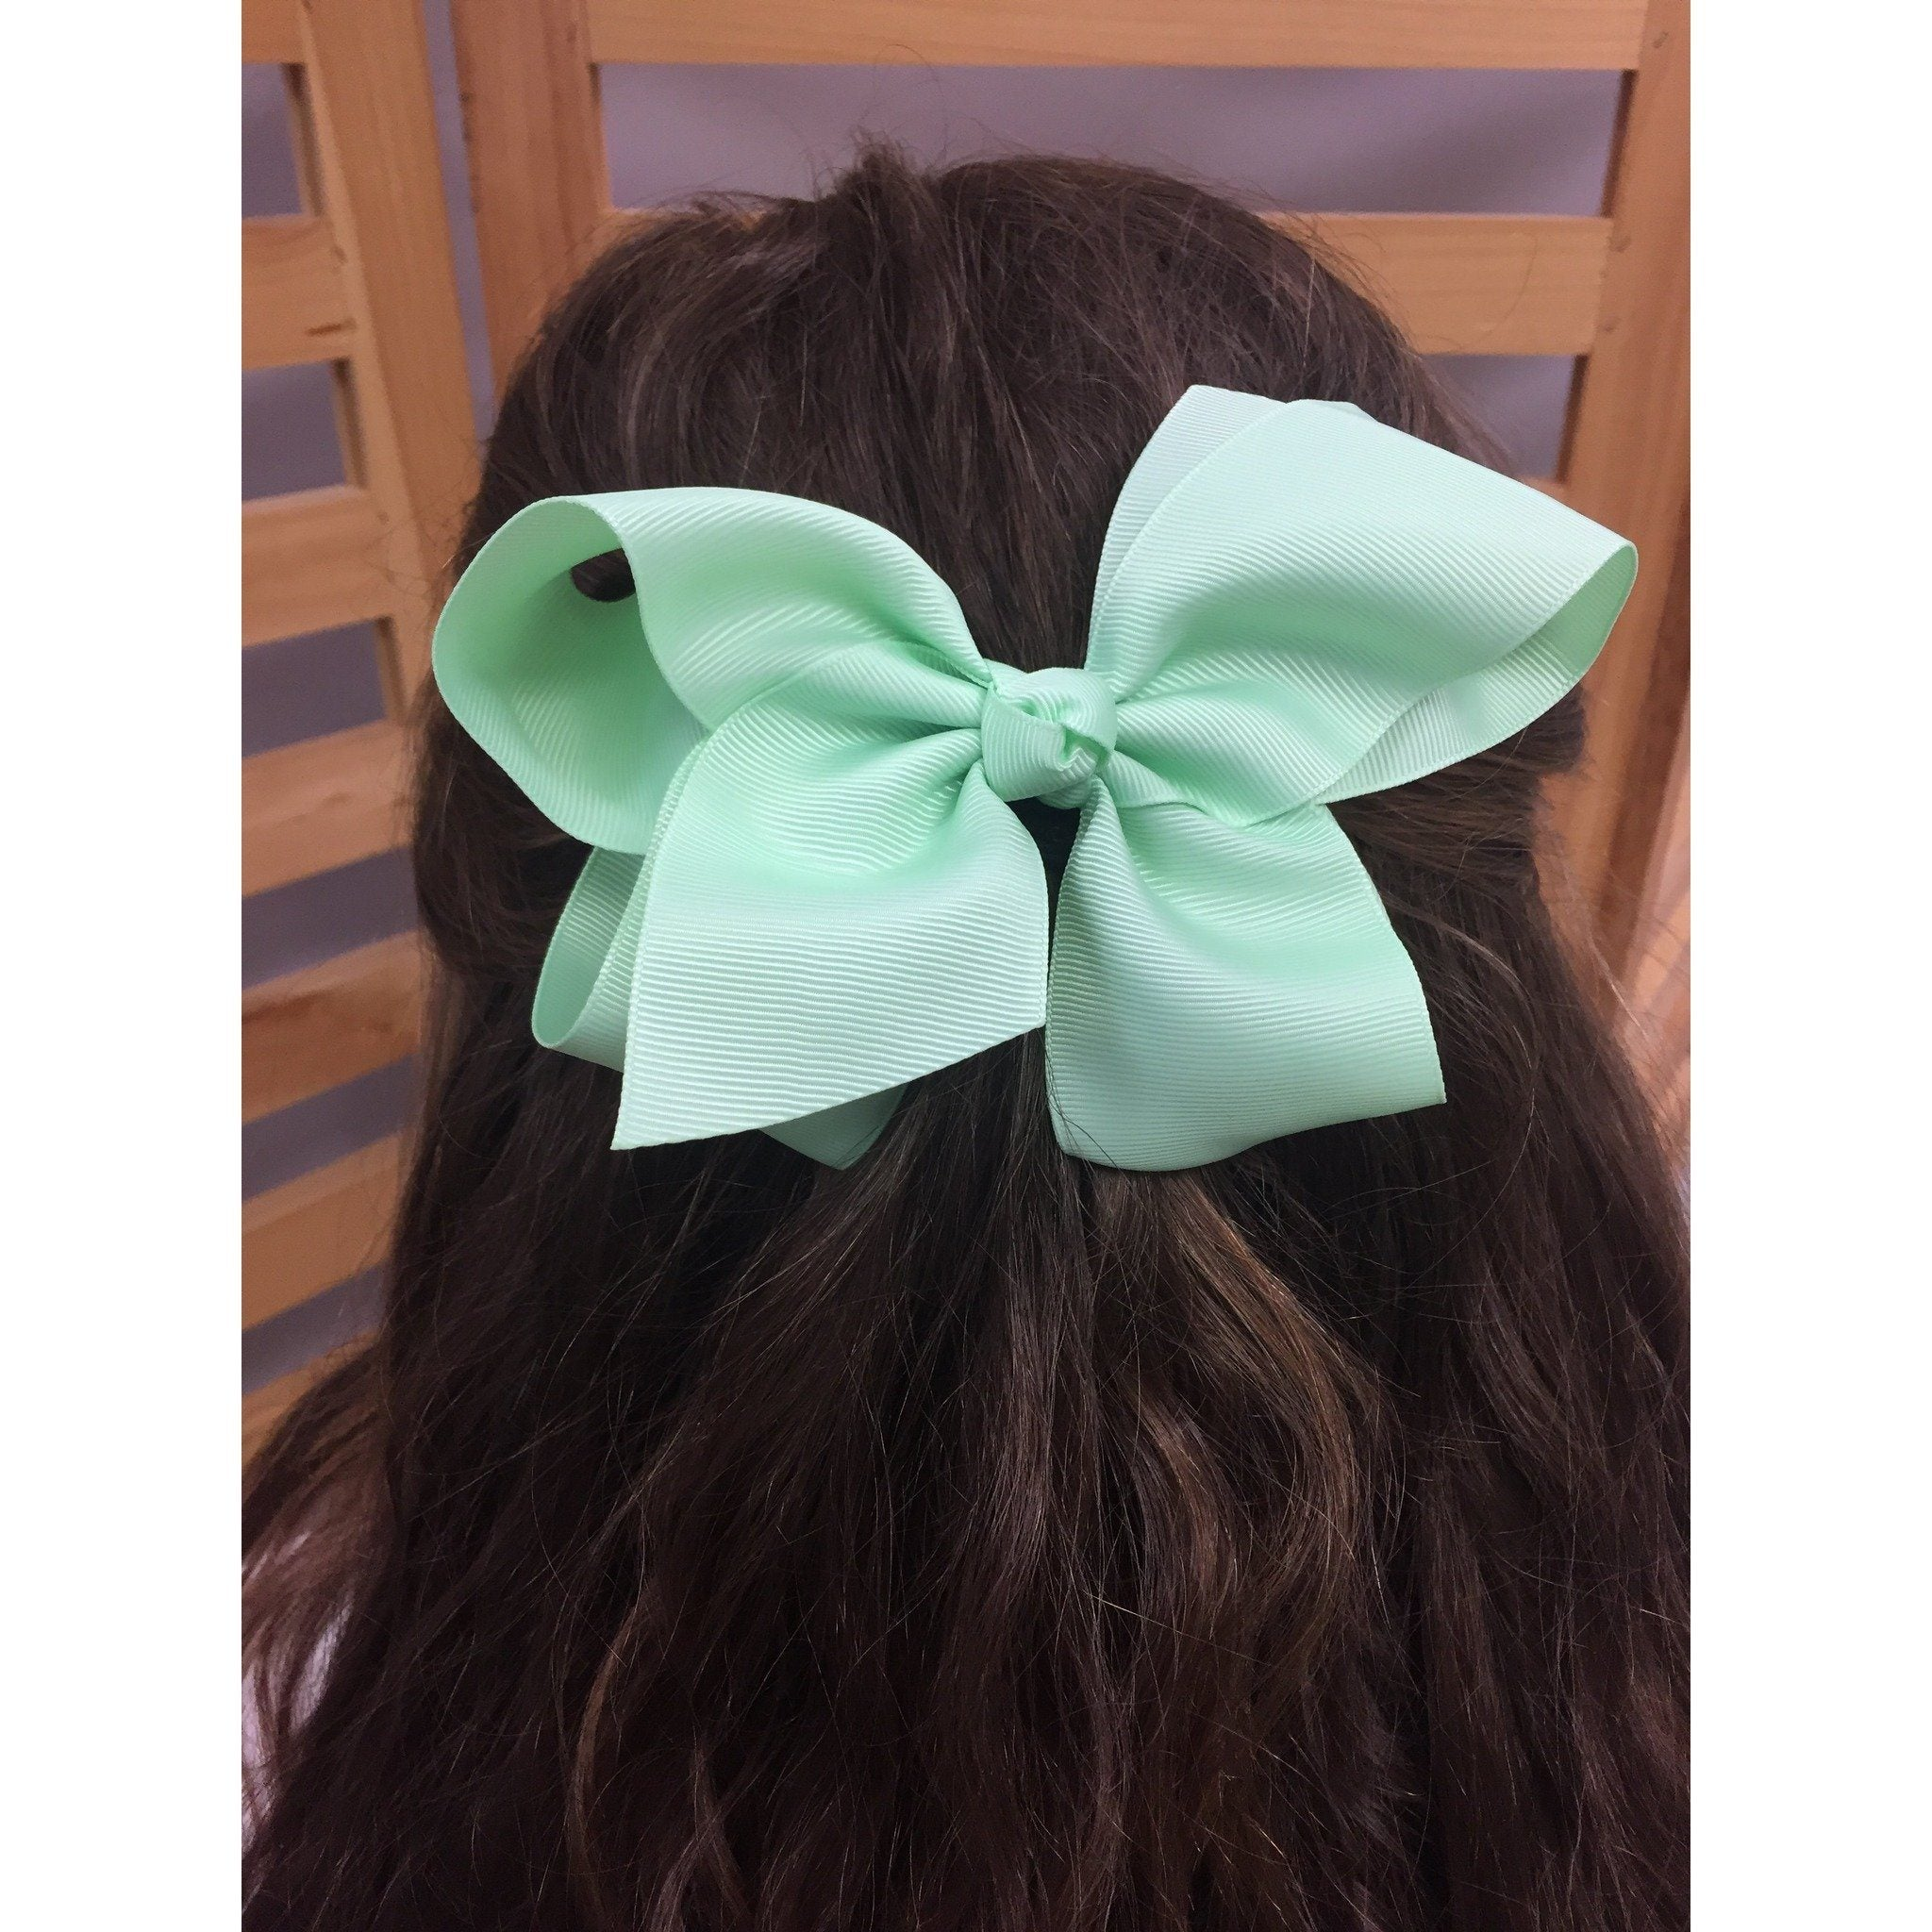 Adorable Essentials, Individual Bows,Accessories,Adorable Essentials, LLC